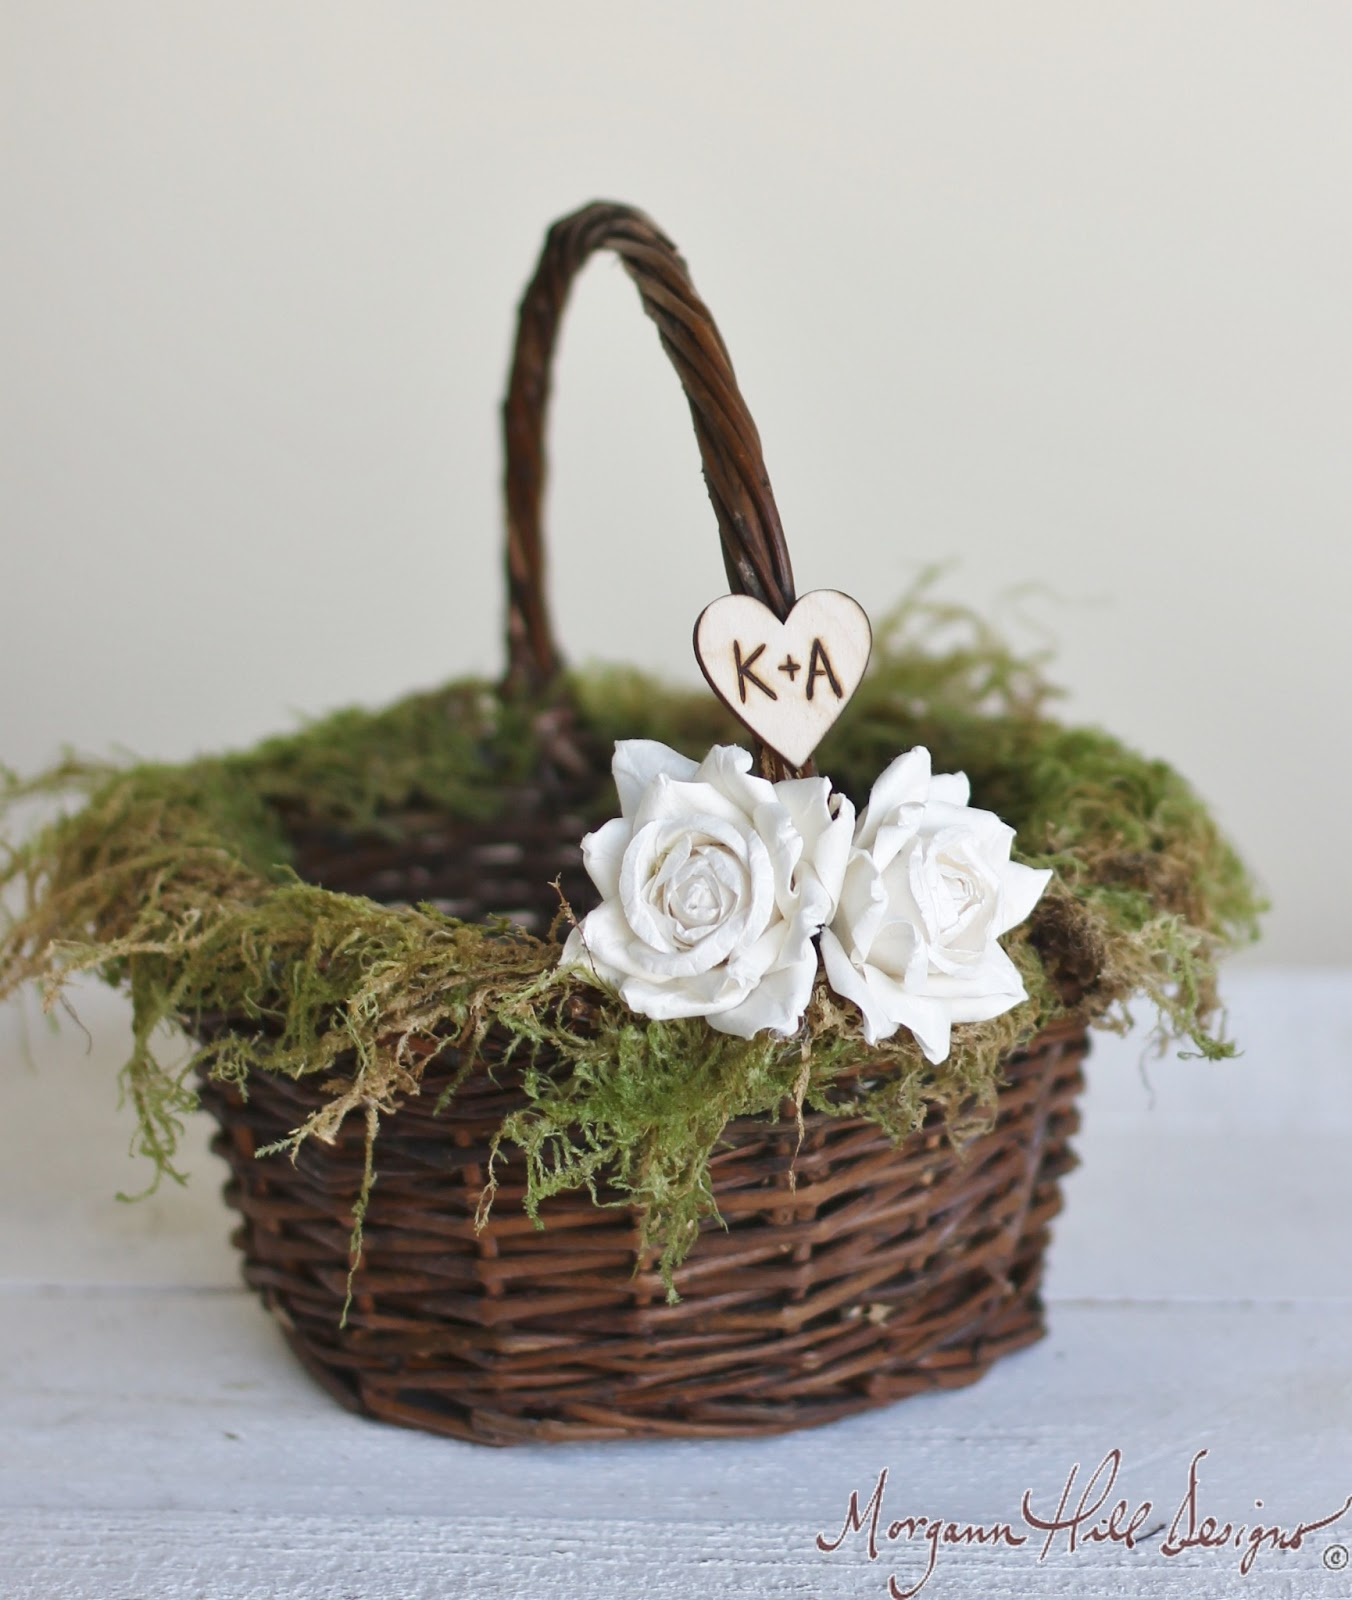 Rustic Country Southern Wedding: Morgann Hill Designs: Personalized Flower Girl Basket